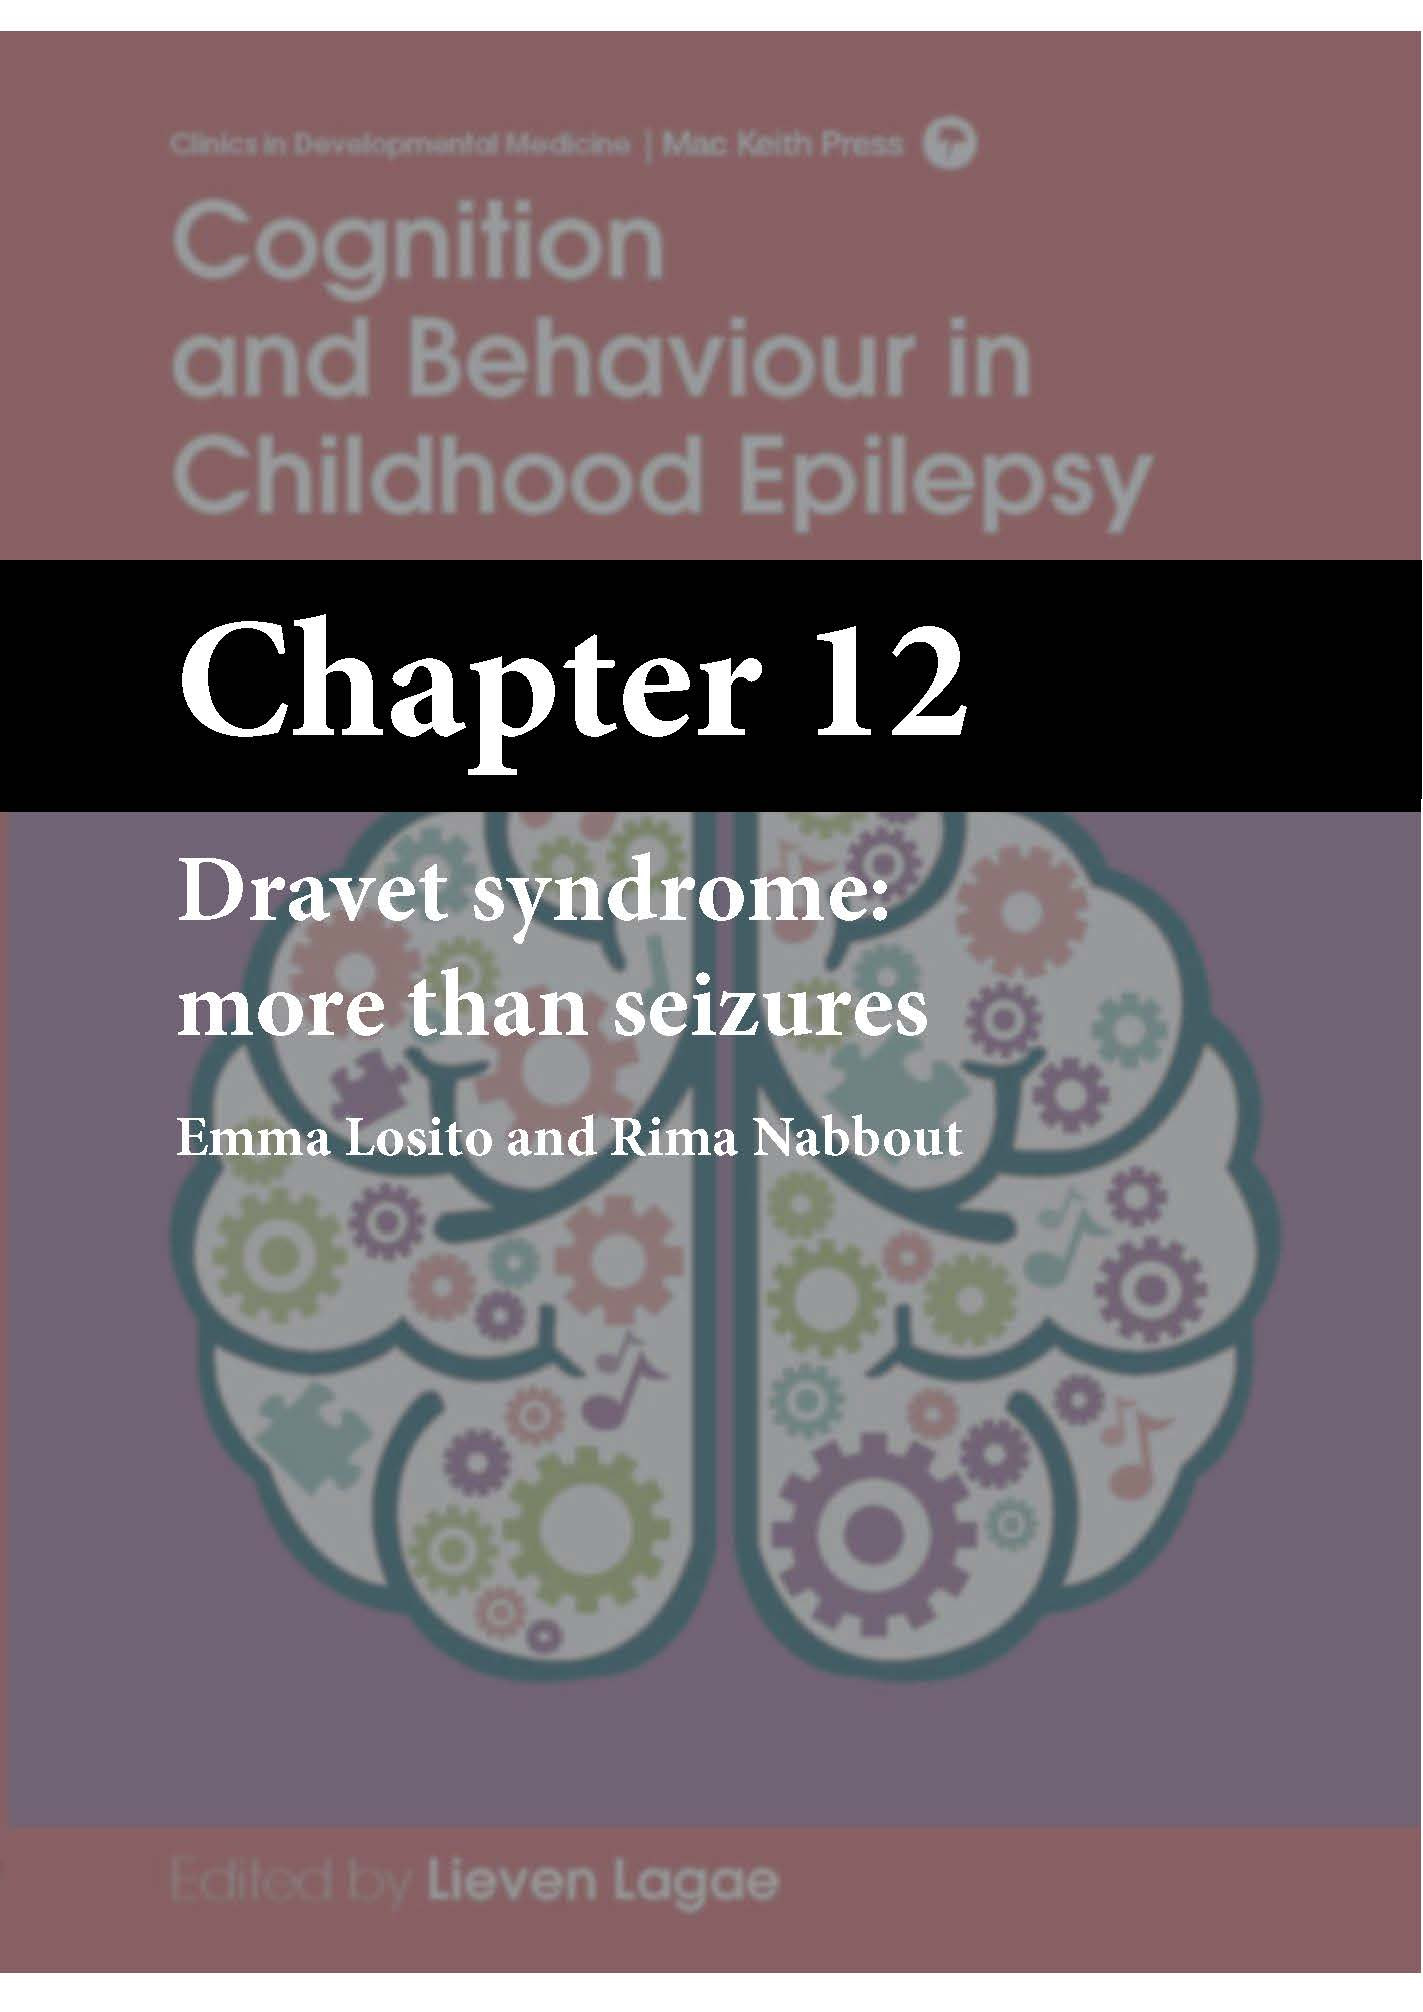 Cognition and Behaviour in Childhood Epilepsy, Lagae, Chapter 12 cover